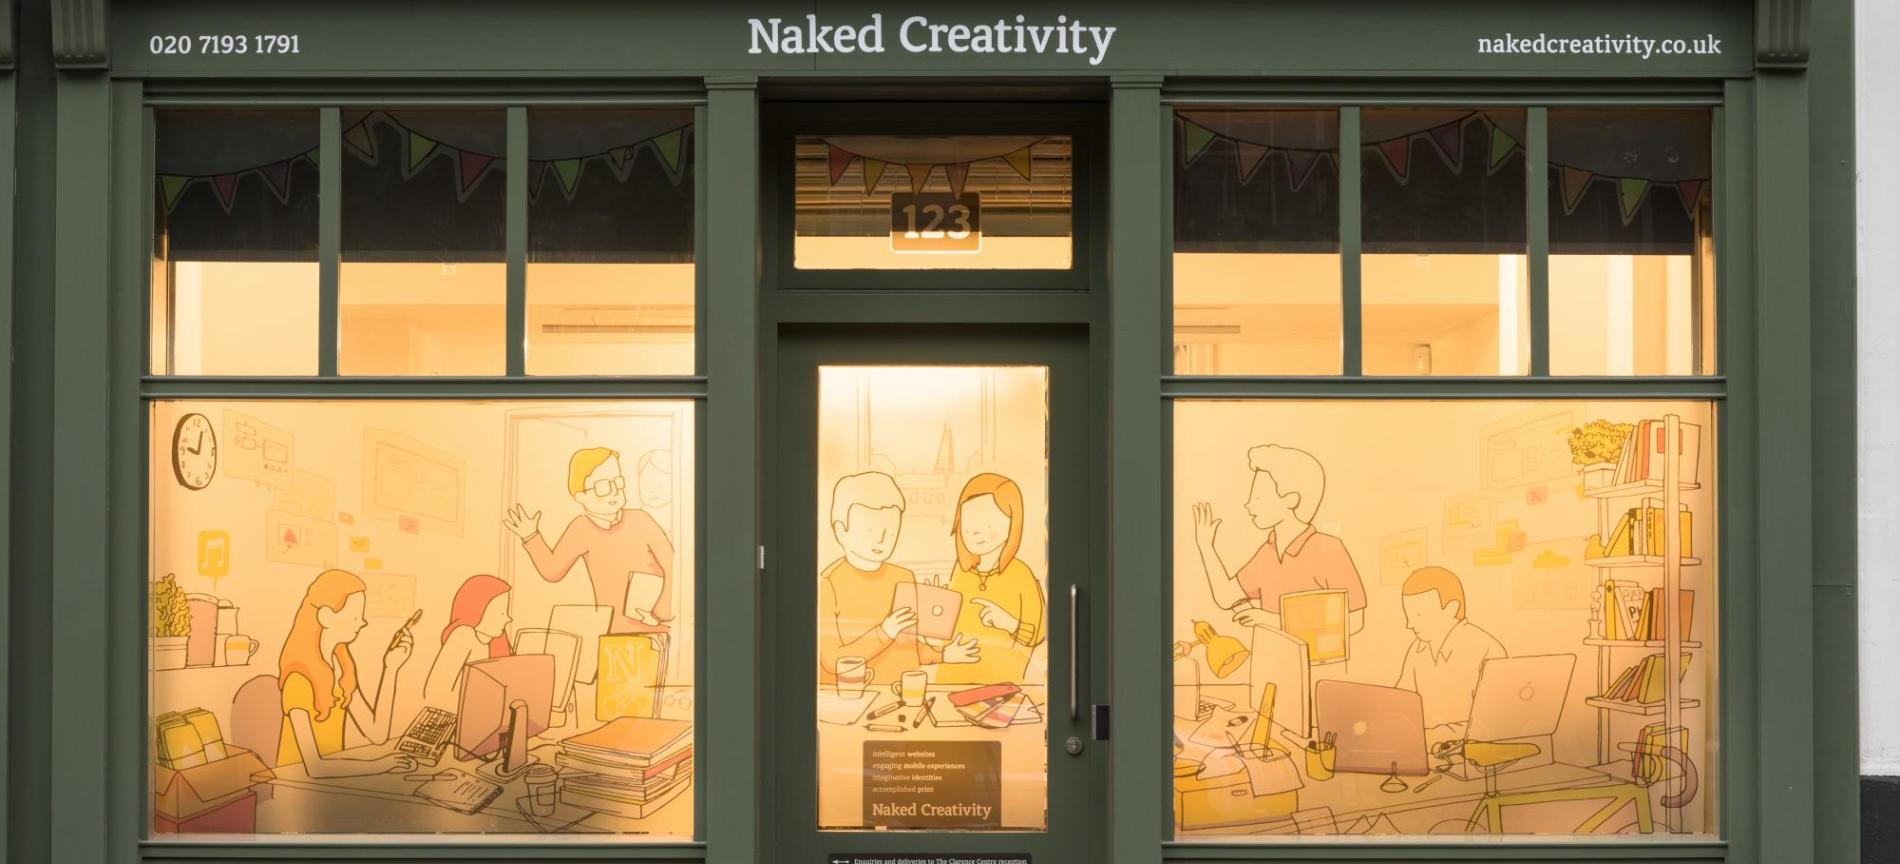 Naked Creativity studio exterior - desktop